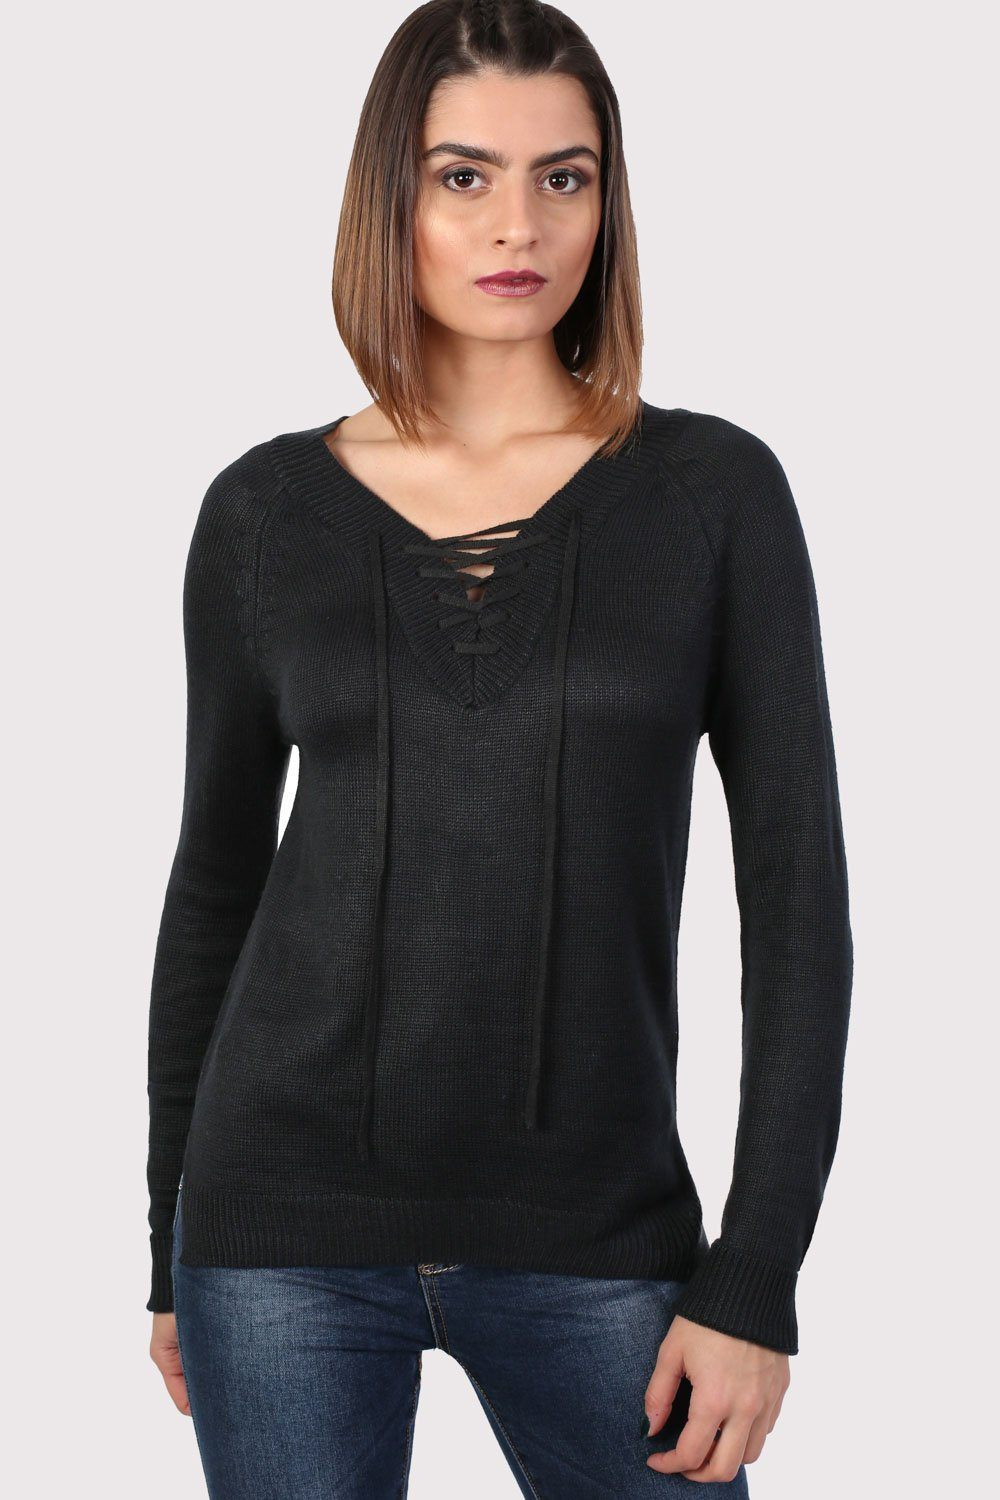 Fine Knit Lace Up Front V Neck Jumper in Black 0